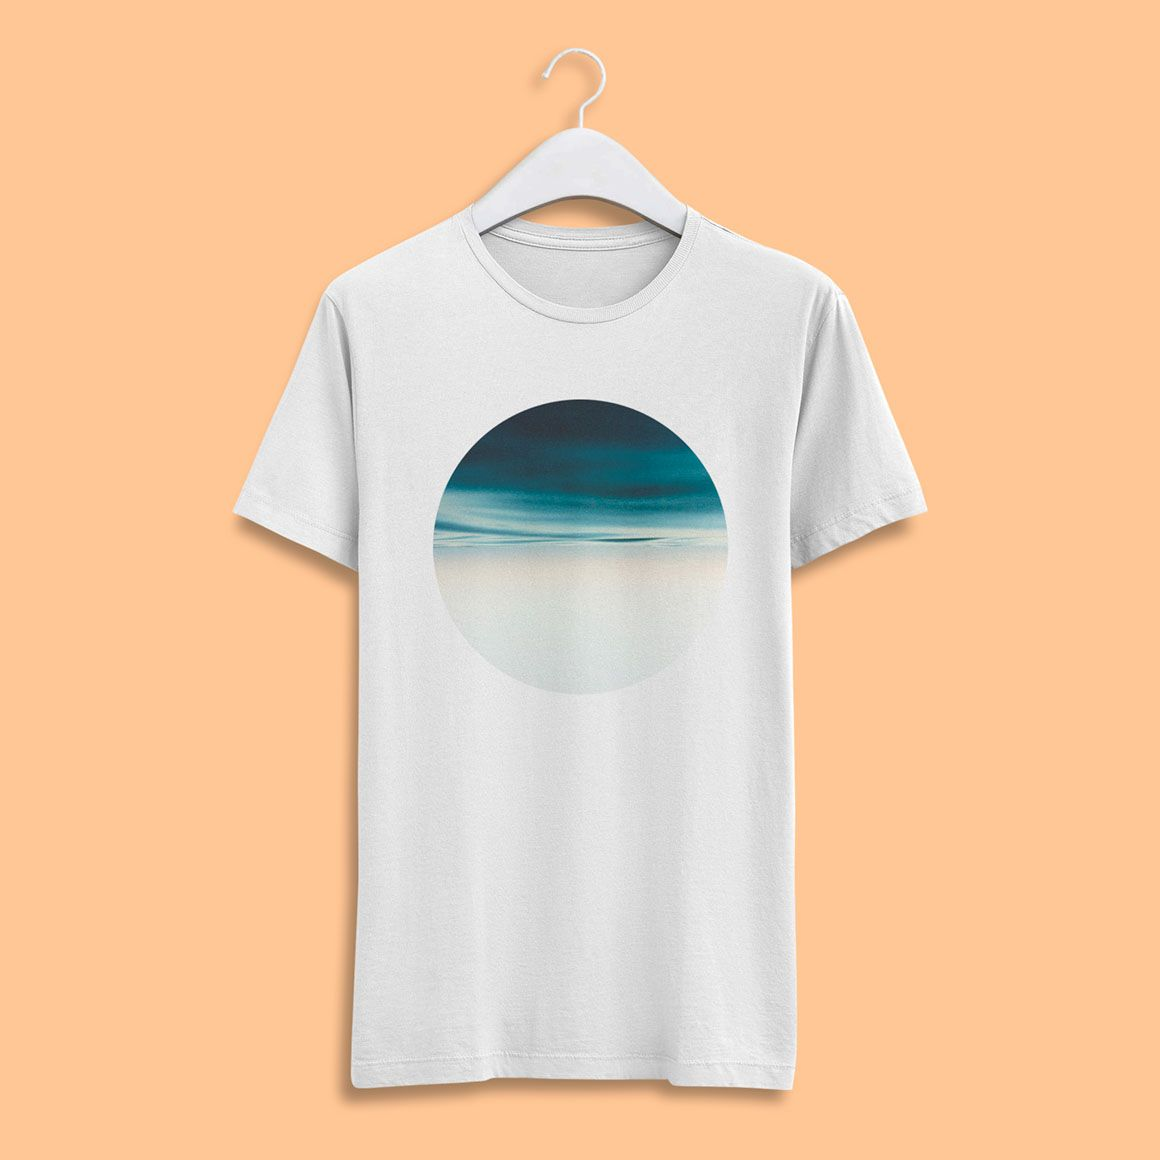 Download Realistic T Shirt Free Mockup Dealjumbo Com Discounted Design Bundles With Extended License Shirt Mockup Tshirt Mockup Tshirt Mockup Free